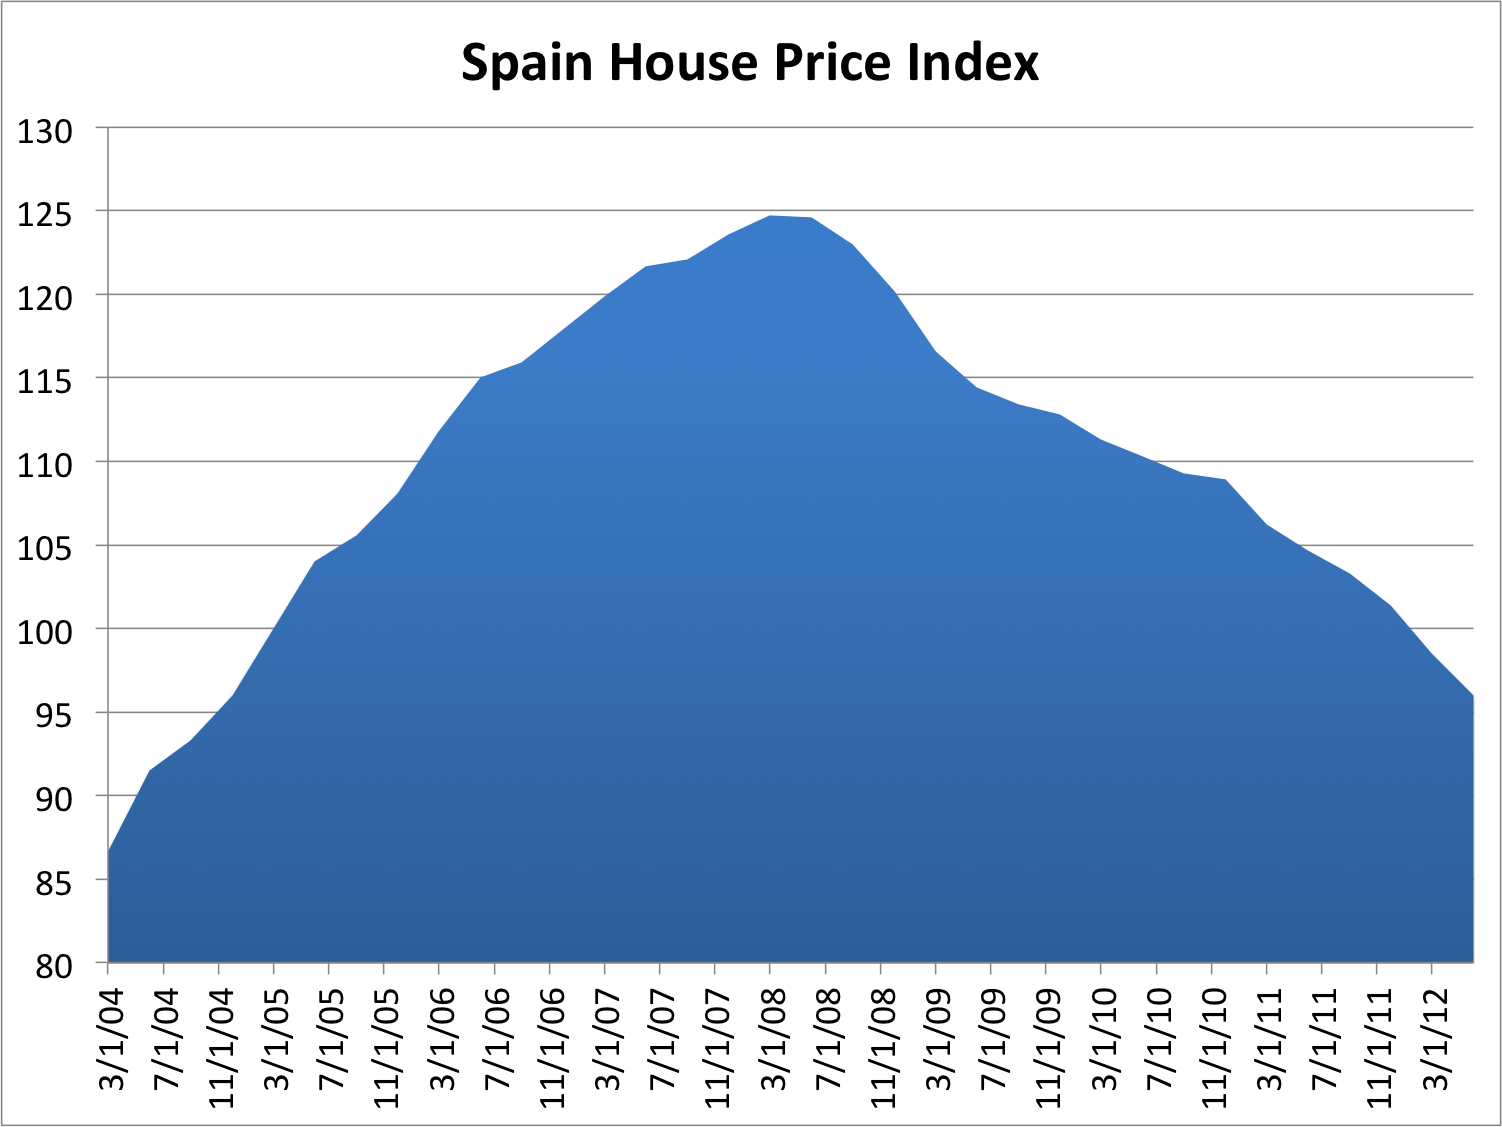 House prices continue to plummet, further destroying the banking system's capital base